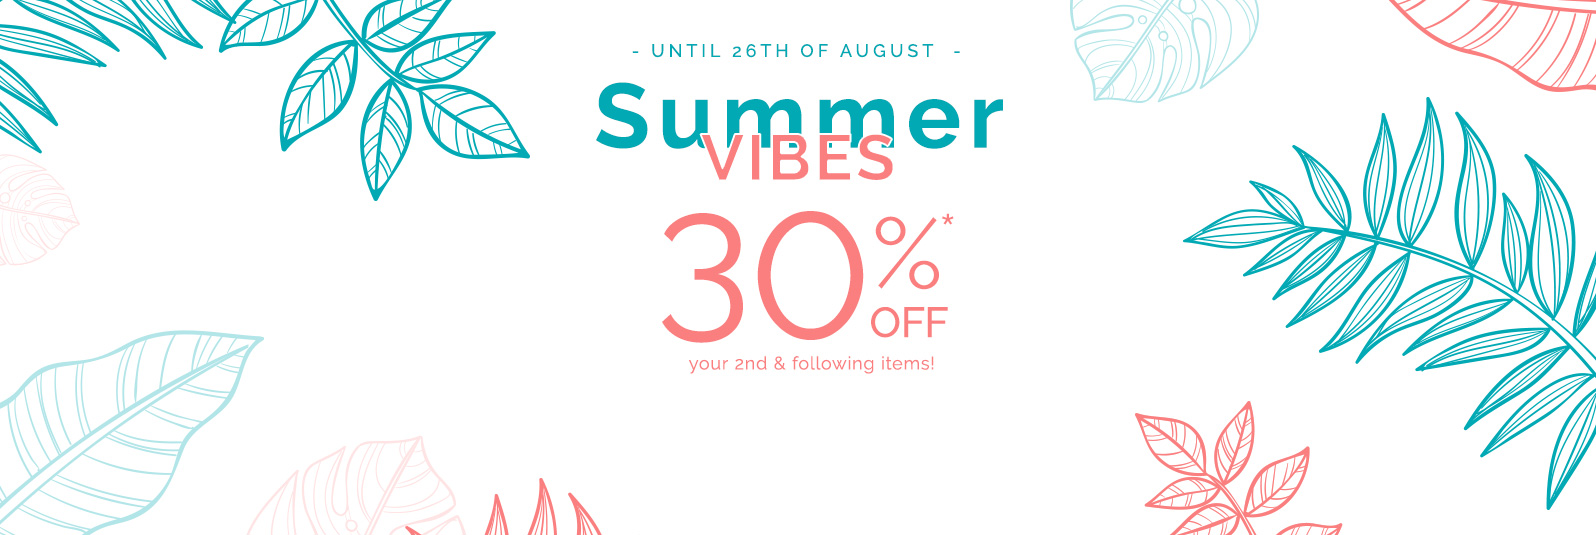 Summer vibes - 30%off* your 2nd and following items !